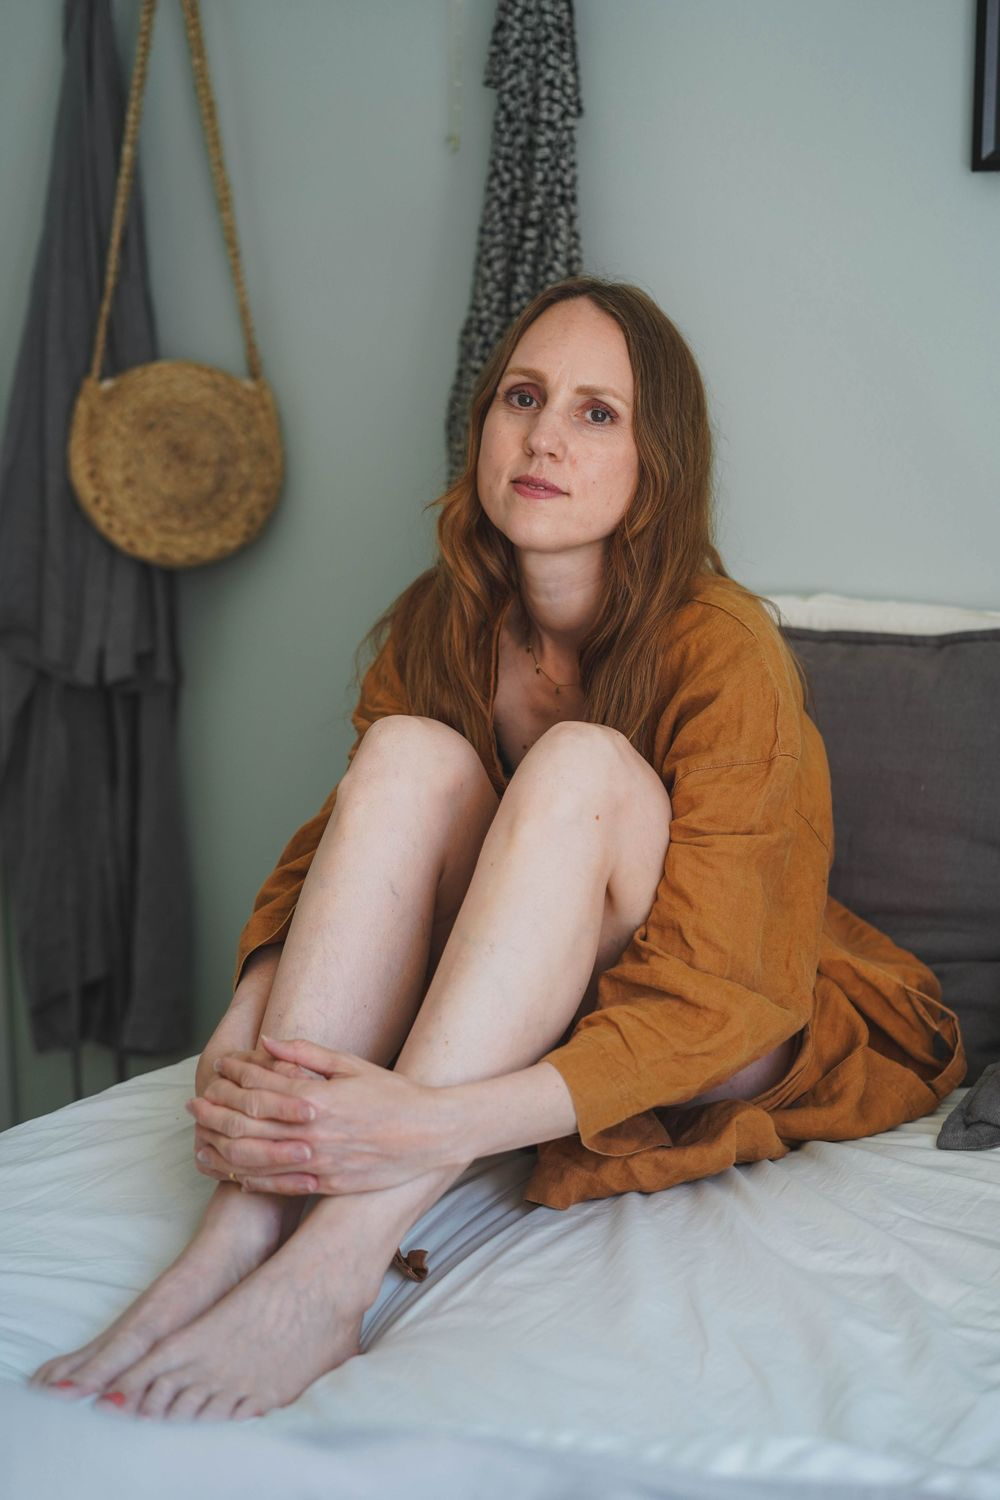 woman in a brown bathrobe sitting on a bed